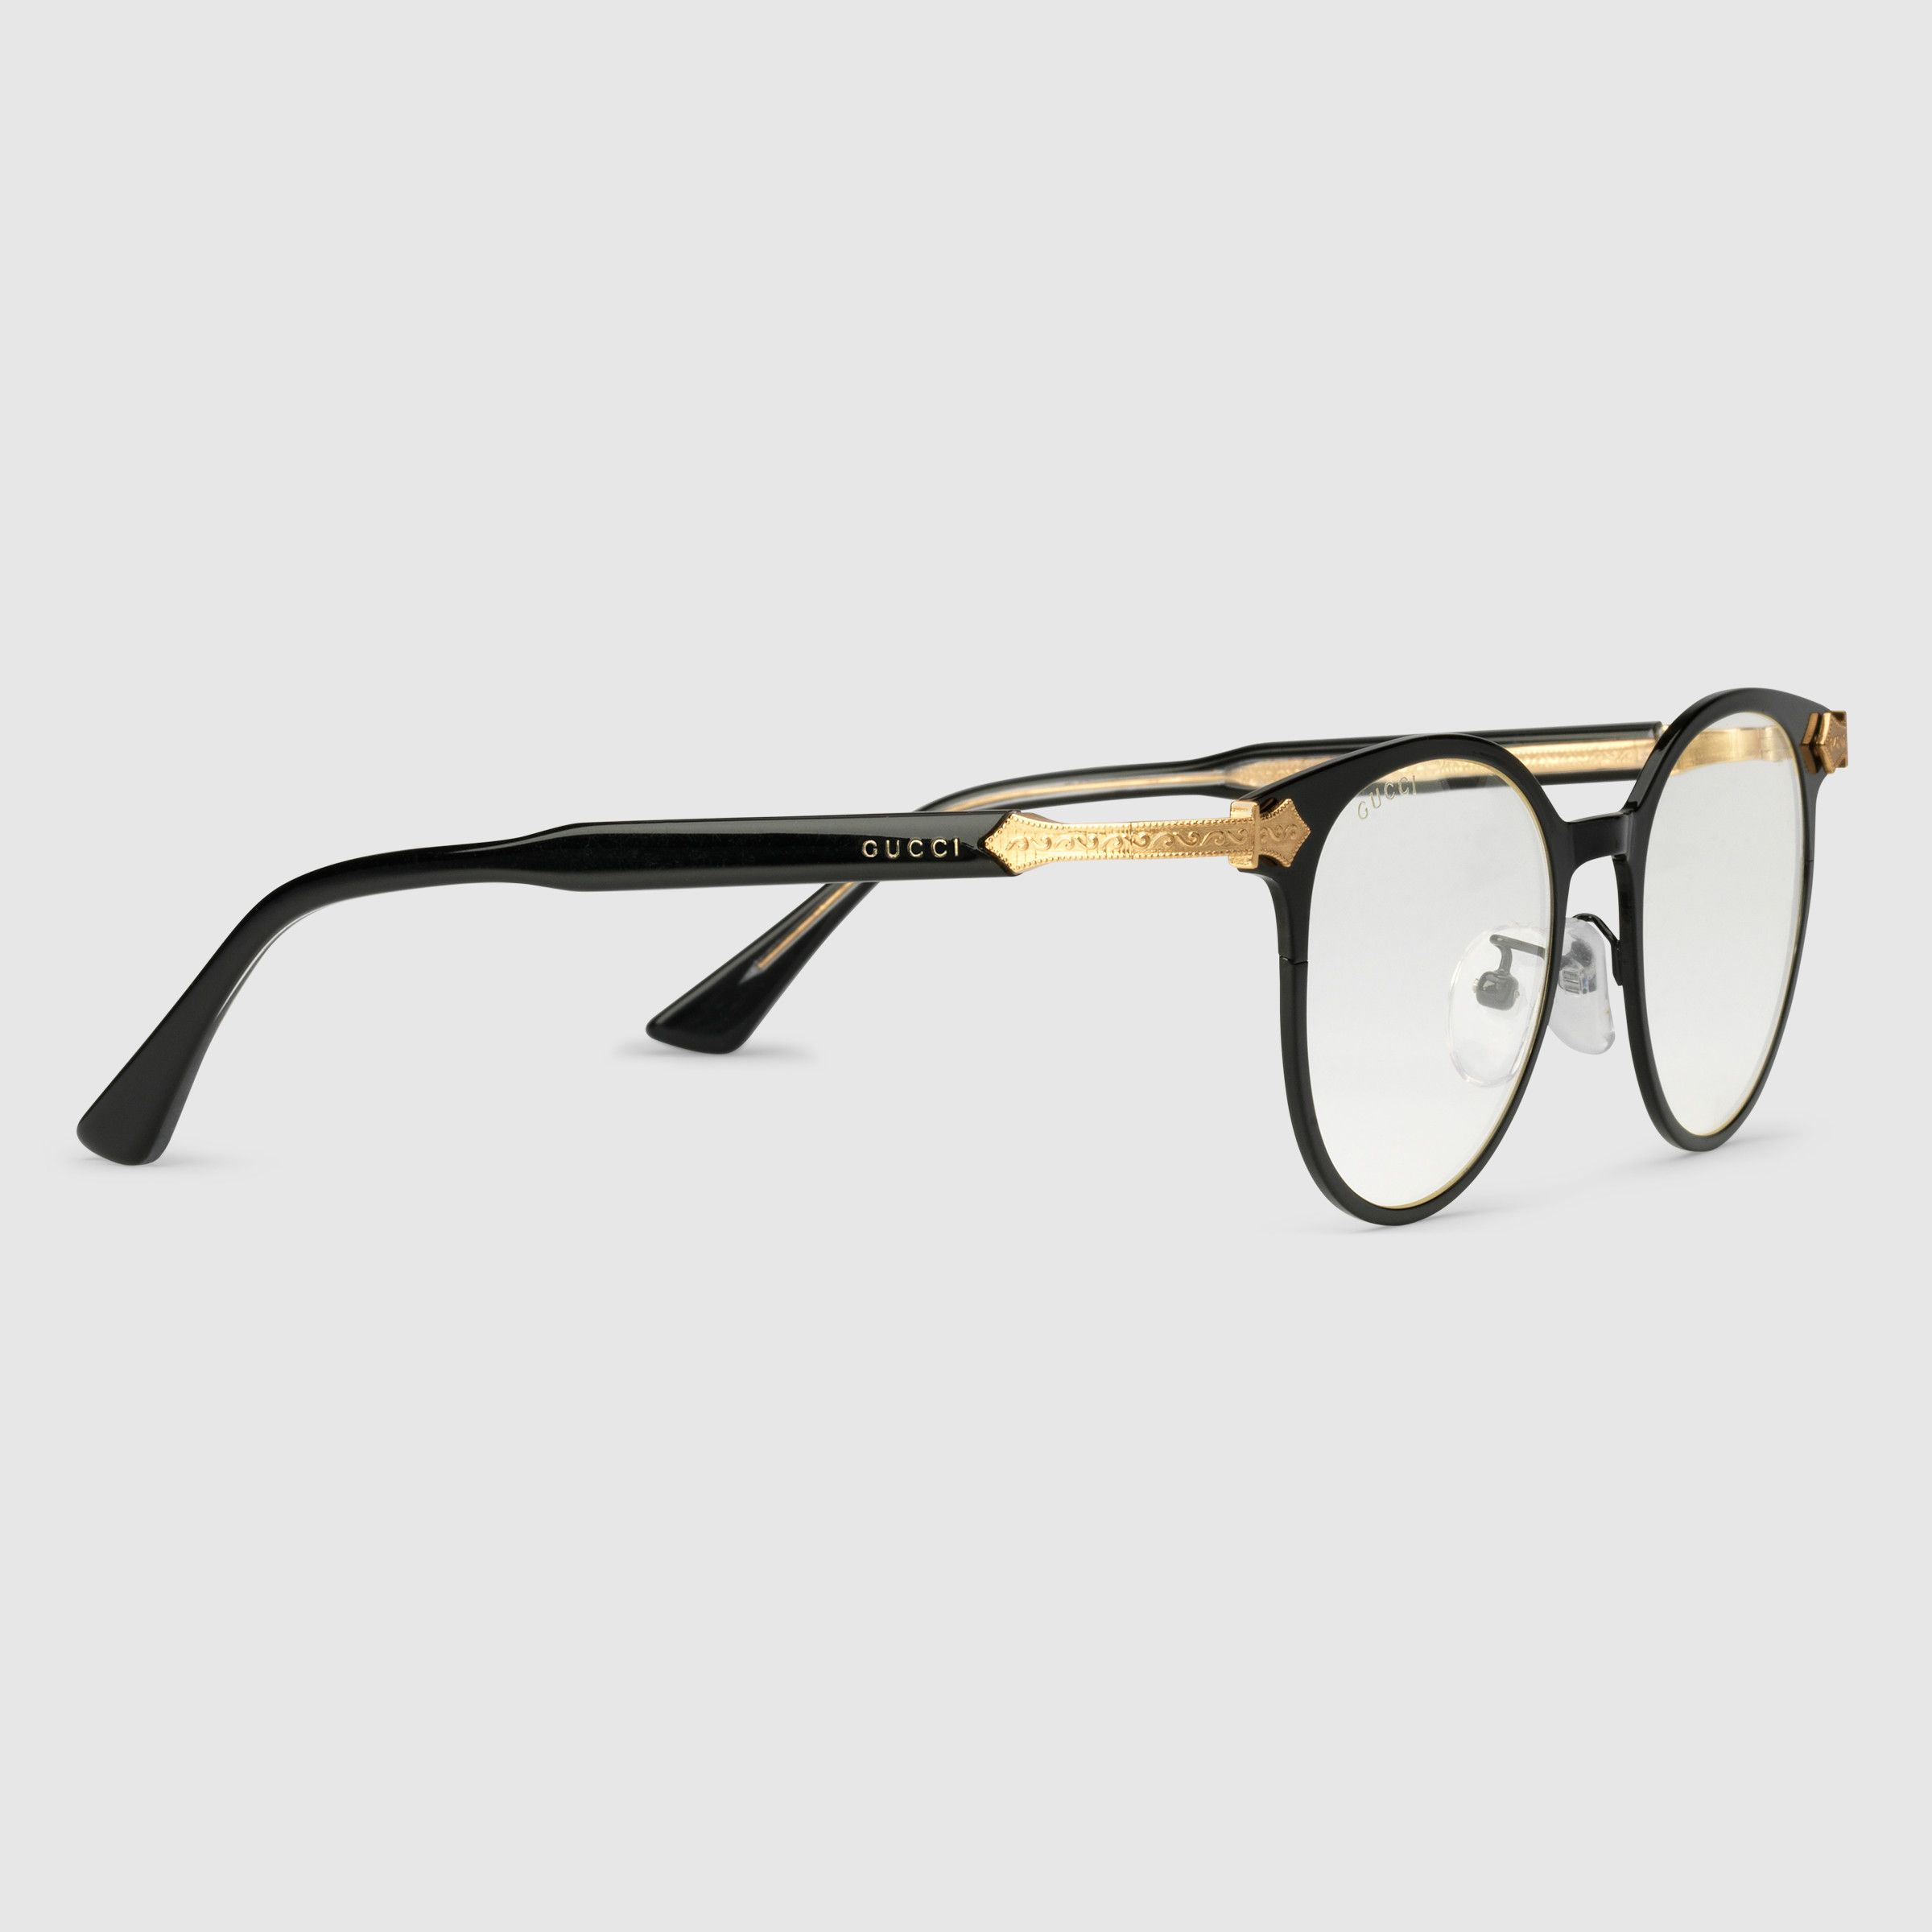 Gucci Round-frame glasses - Sale! Up to 75% OFF! Shop at Stylizio for  women s and men s designer handbags, luxury sunglasses, watches, jewelry,  purses, ... bfa295a57e